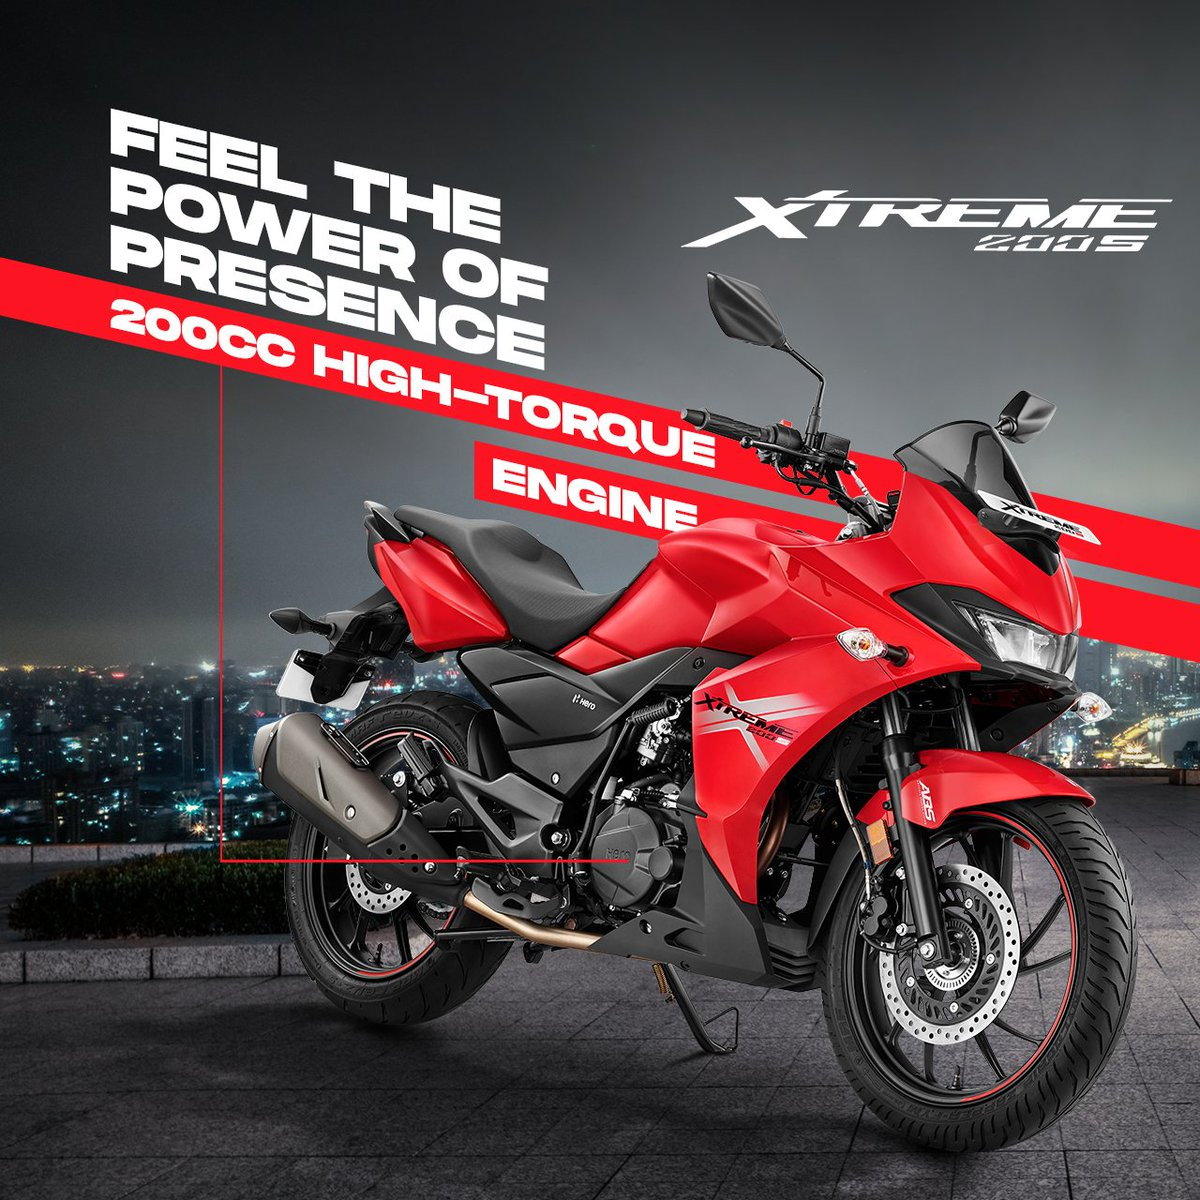 A 200cc high torque ride. Feel the power as you ride. Know more https t.co ezMr1tfF91 https t.co EuYpcgoctr